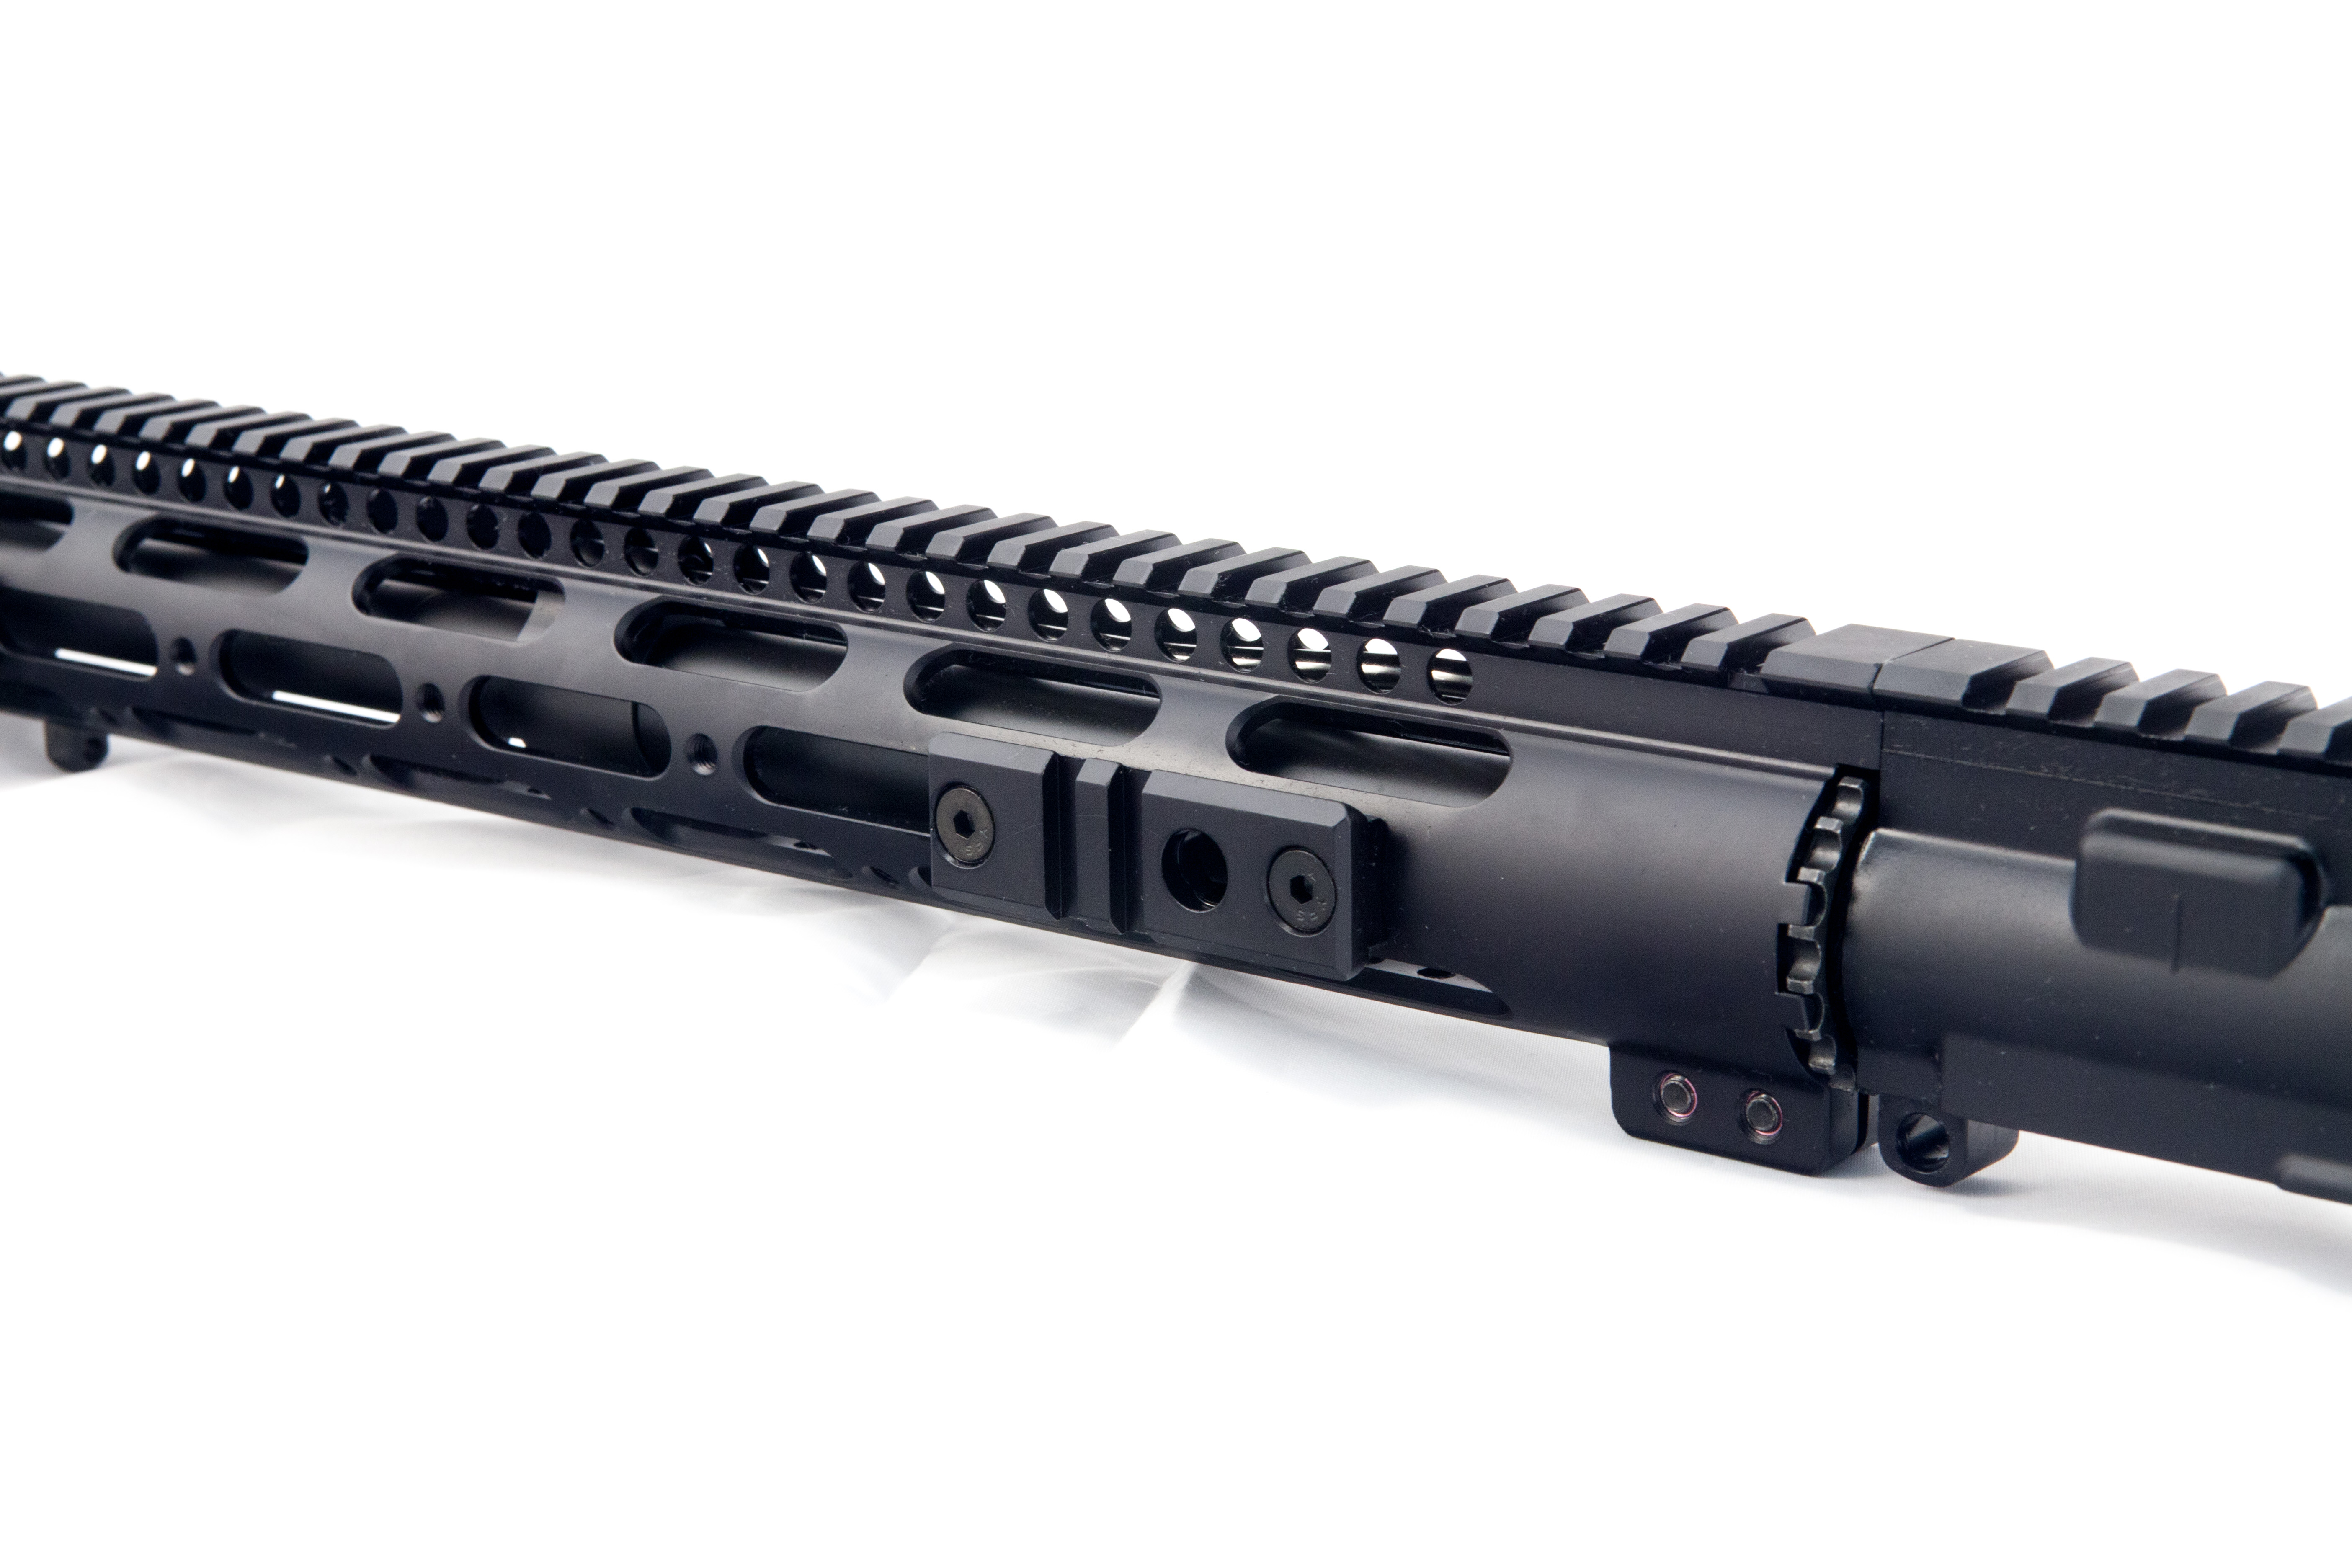 PNW Arms Signature Series 300 AAC Blackout 300BLK Complete Tactical AR 15 Upper Receiver Assembly DefenseReview.com DR 8 PNW Arms Signature Series 300 AAC Blackout (300BLK) Tactical AR 15 Carbine 16 Mid Length Upper Receiver and Ammo Combo Deal Available for 300 BLK CONUS Delivery Program Launch!